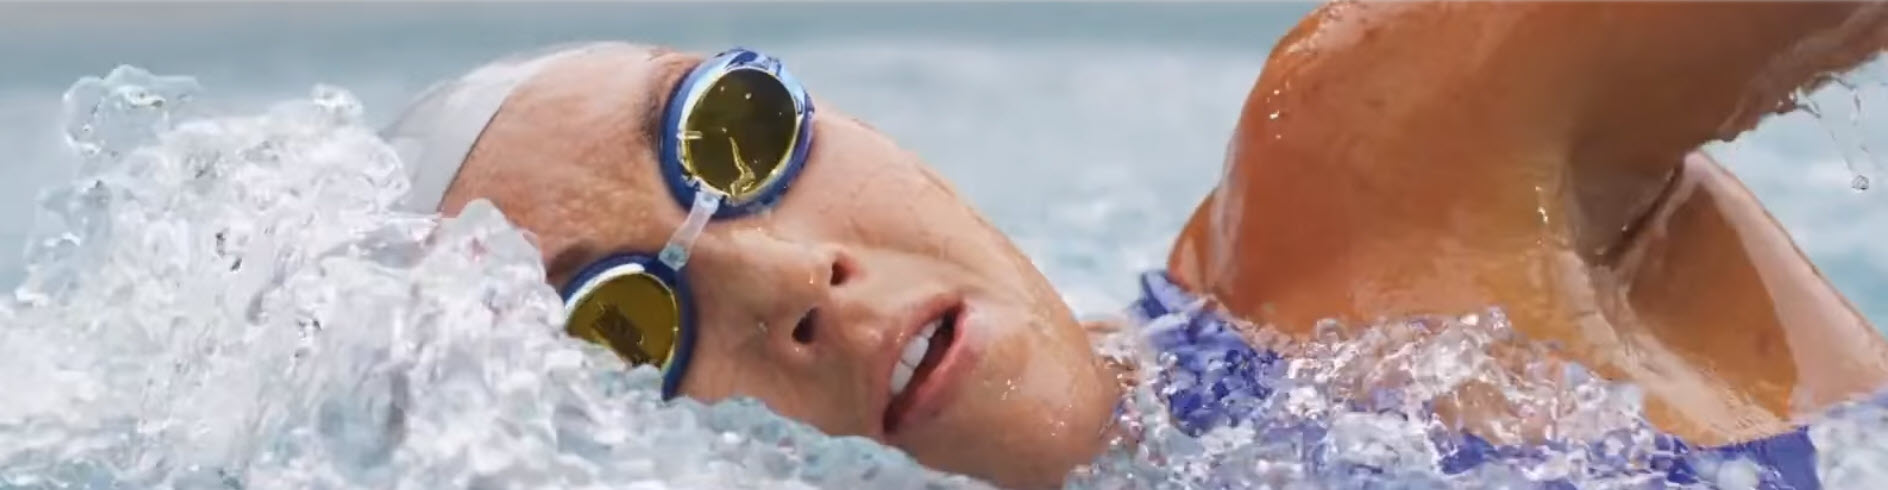 Enjoy More from Your Swimming Pool with Fastlane, Aquatic Fitness Pools Sioux Falls